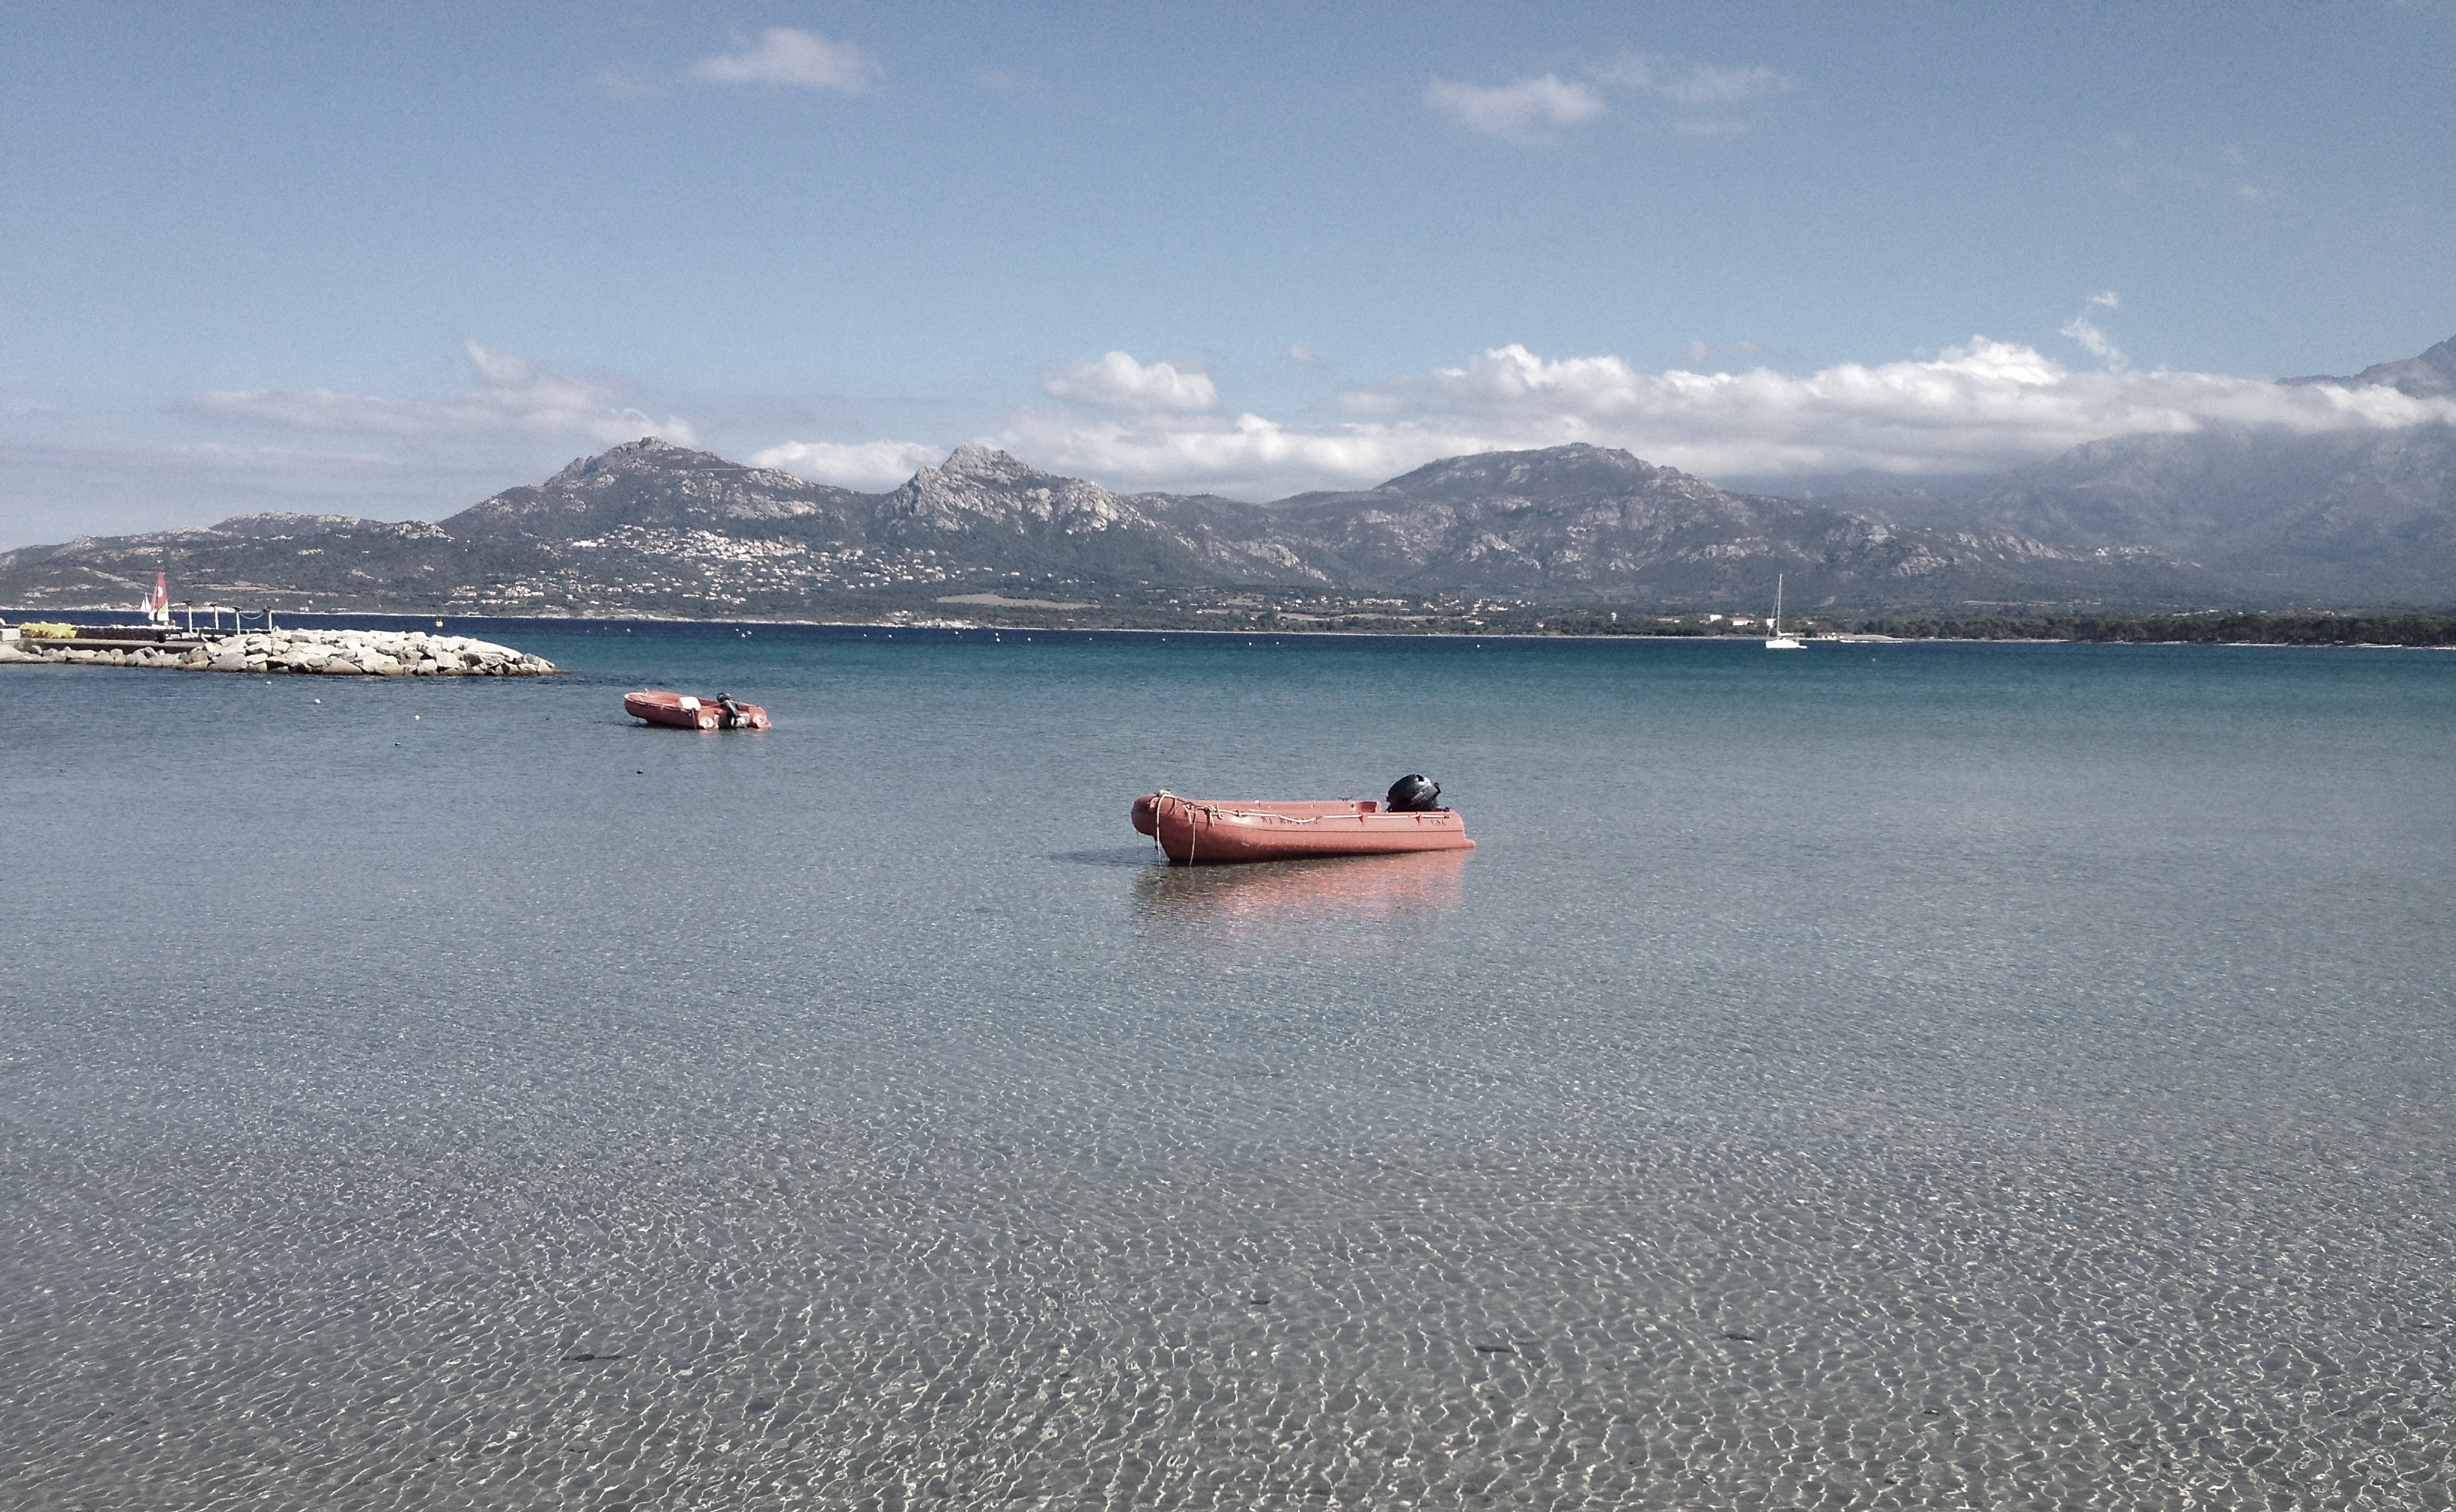 Small Boats at Sea, Boat, Landscape, Mountains, Rocks, HQ Photo